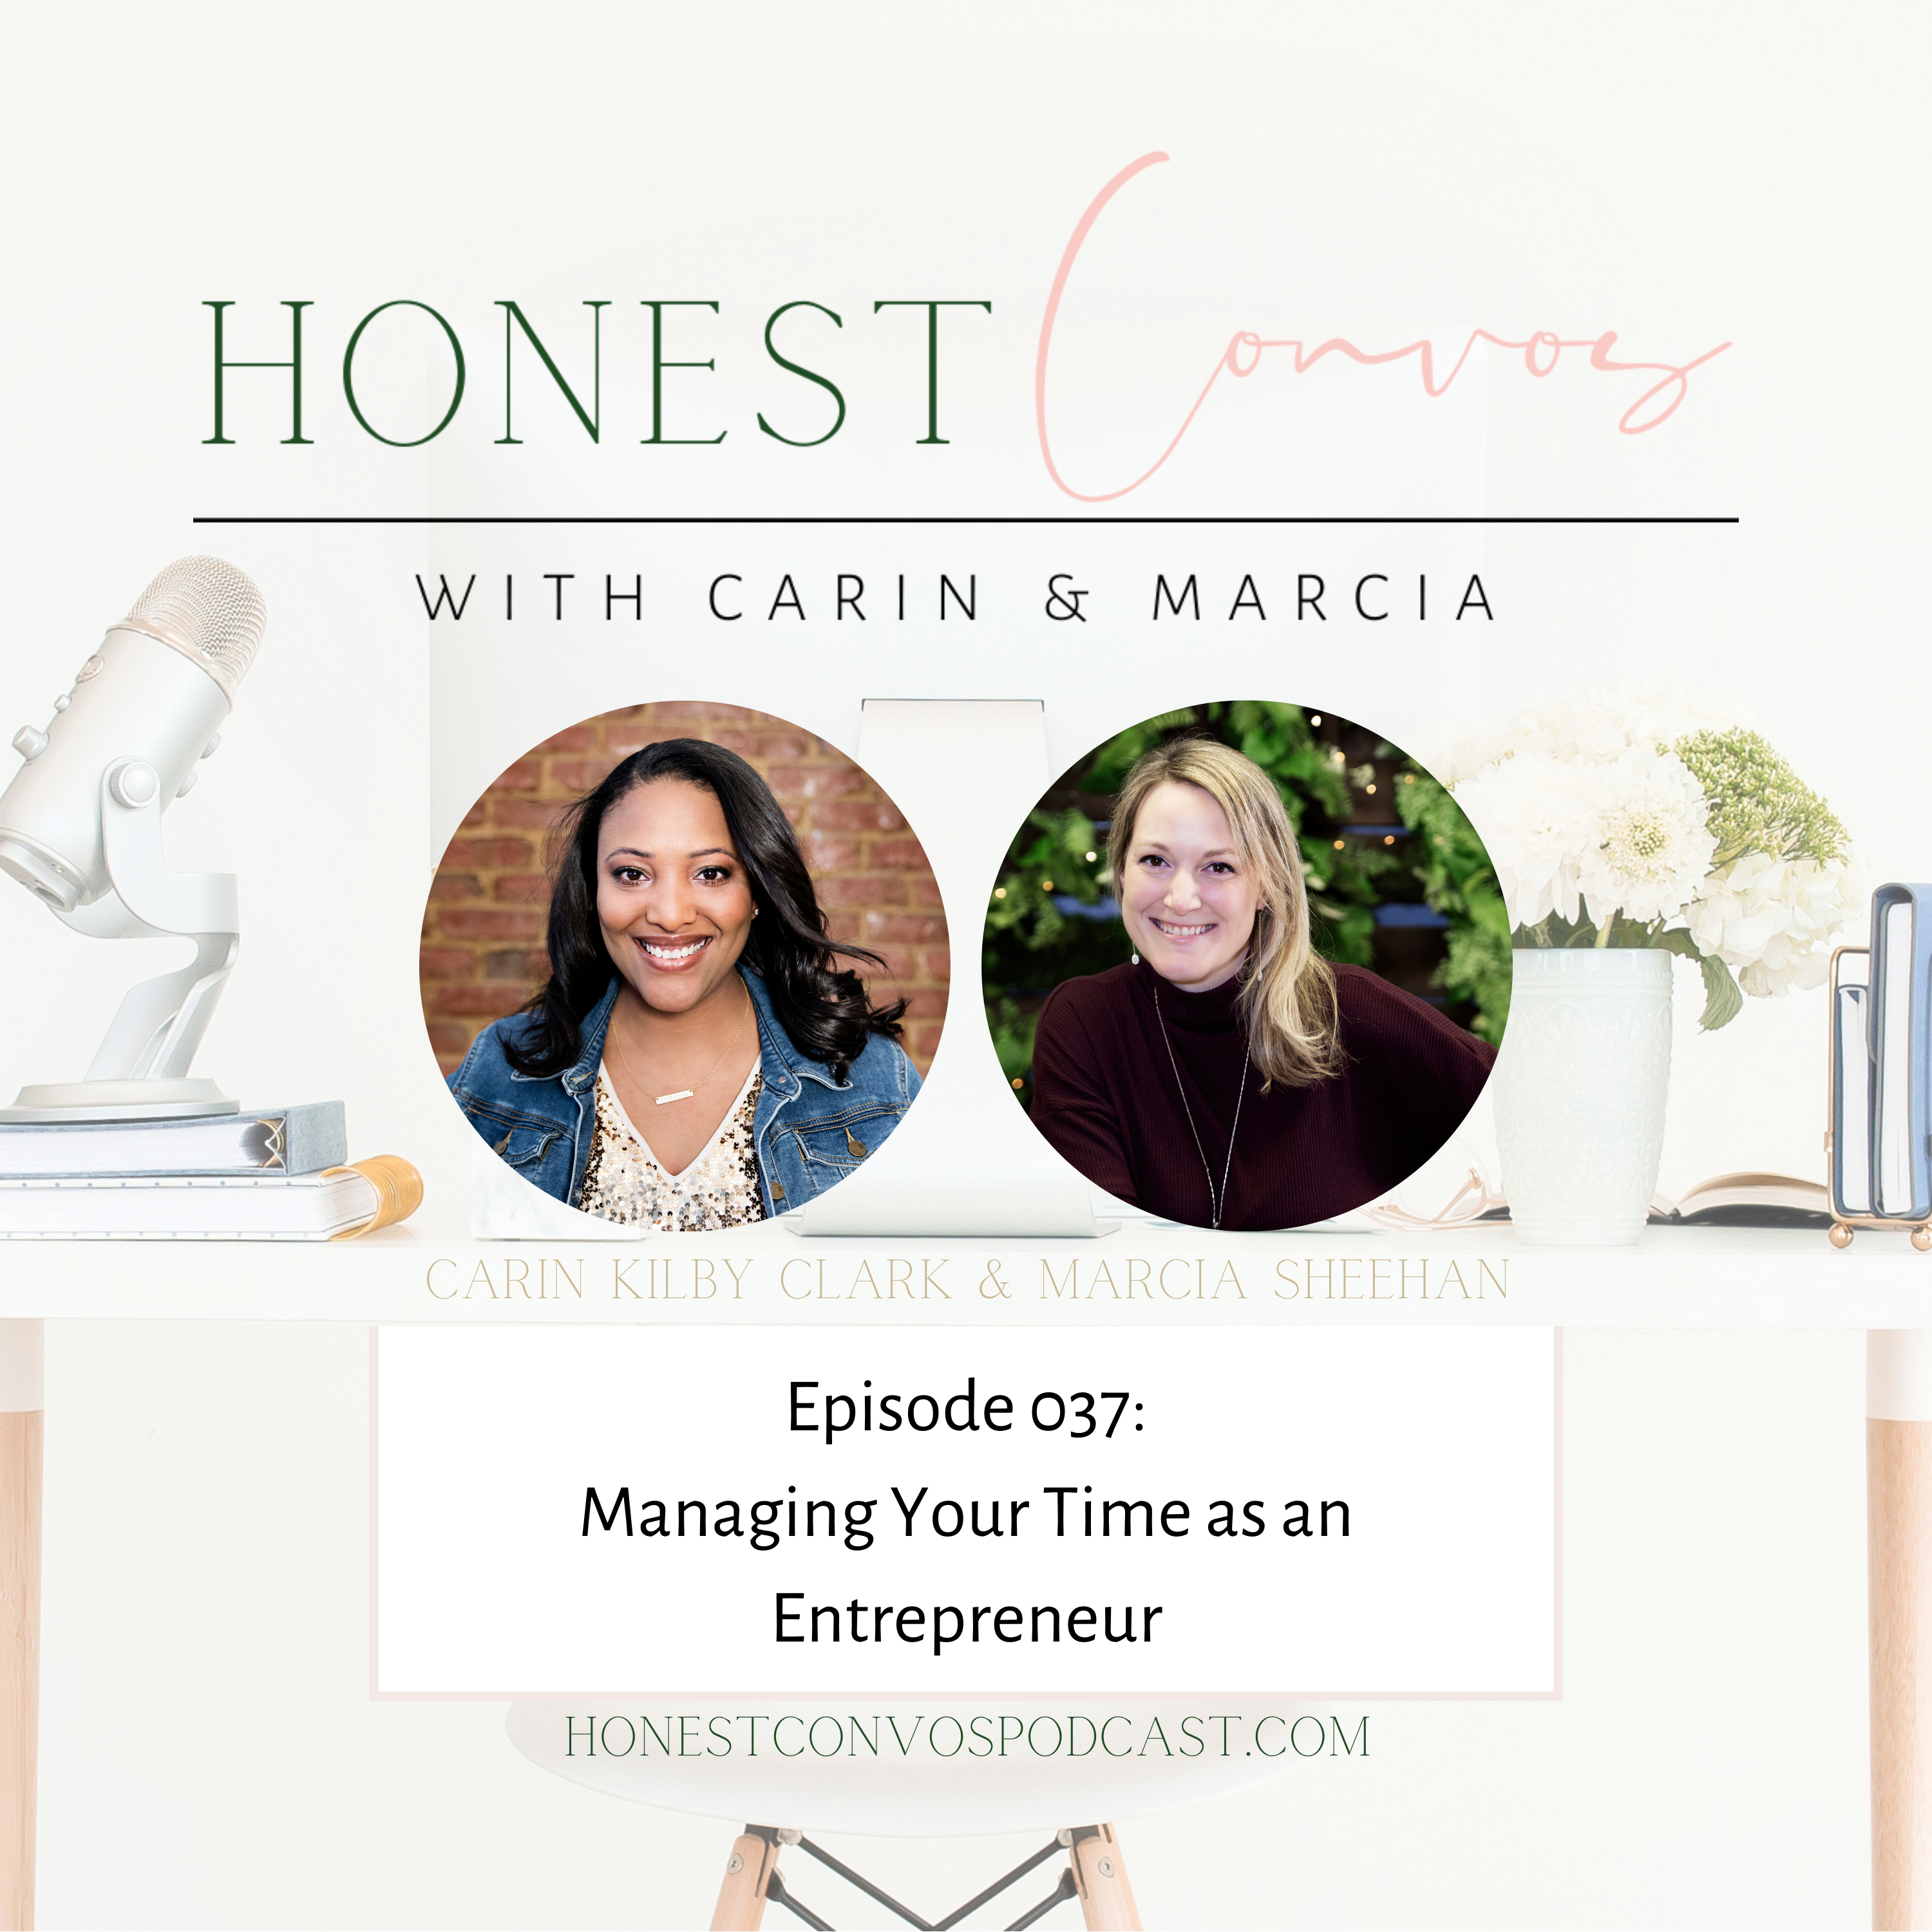 Managing Your Time as an Entrepreneur